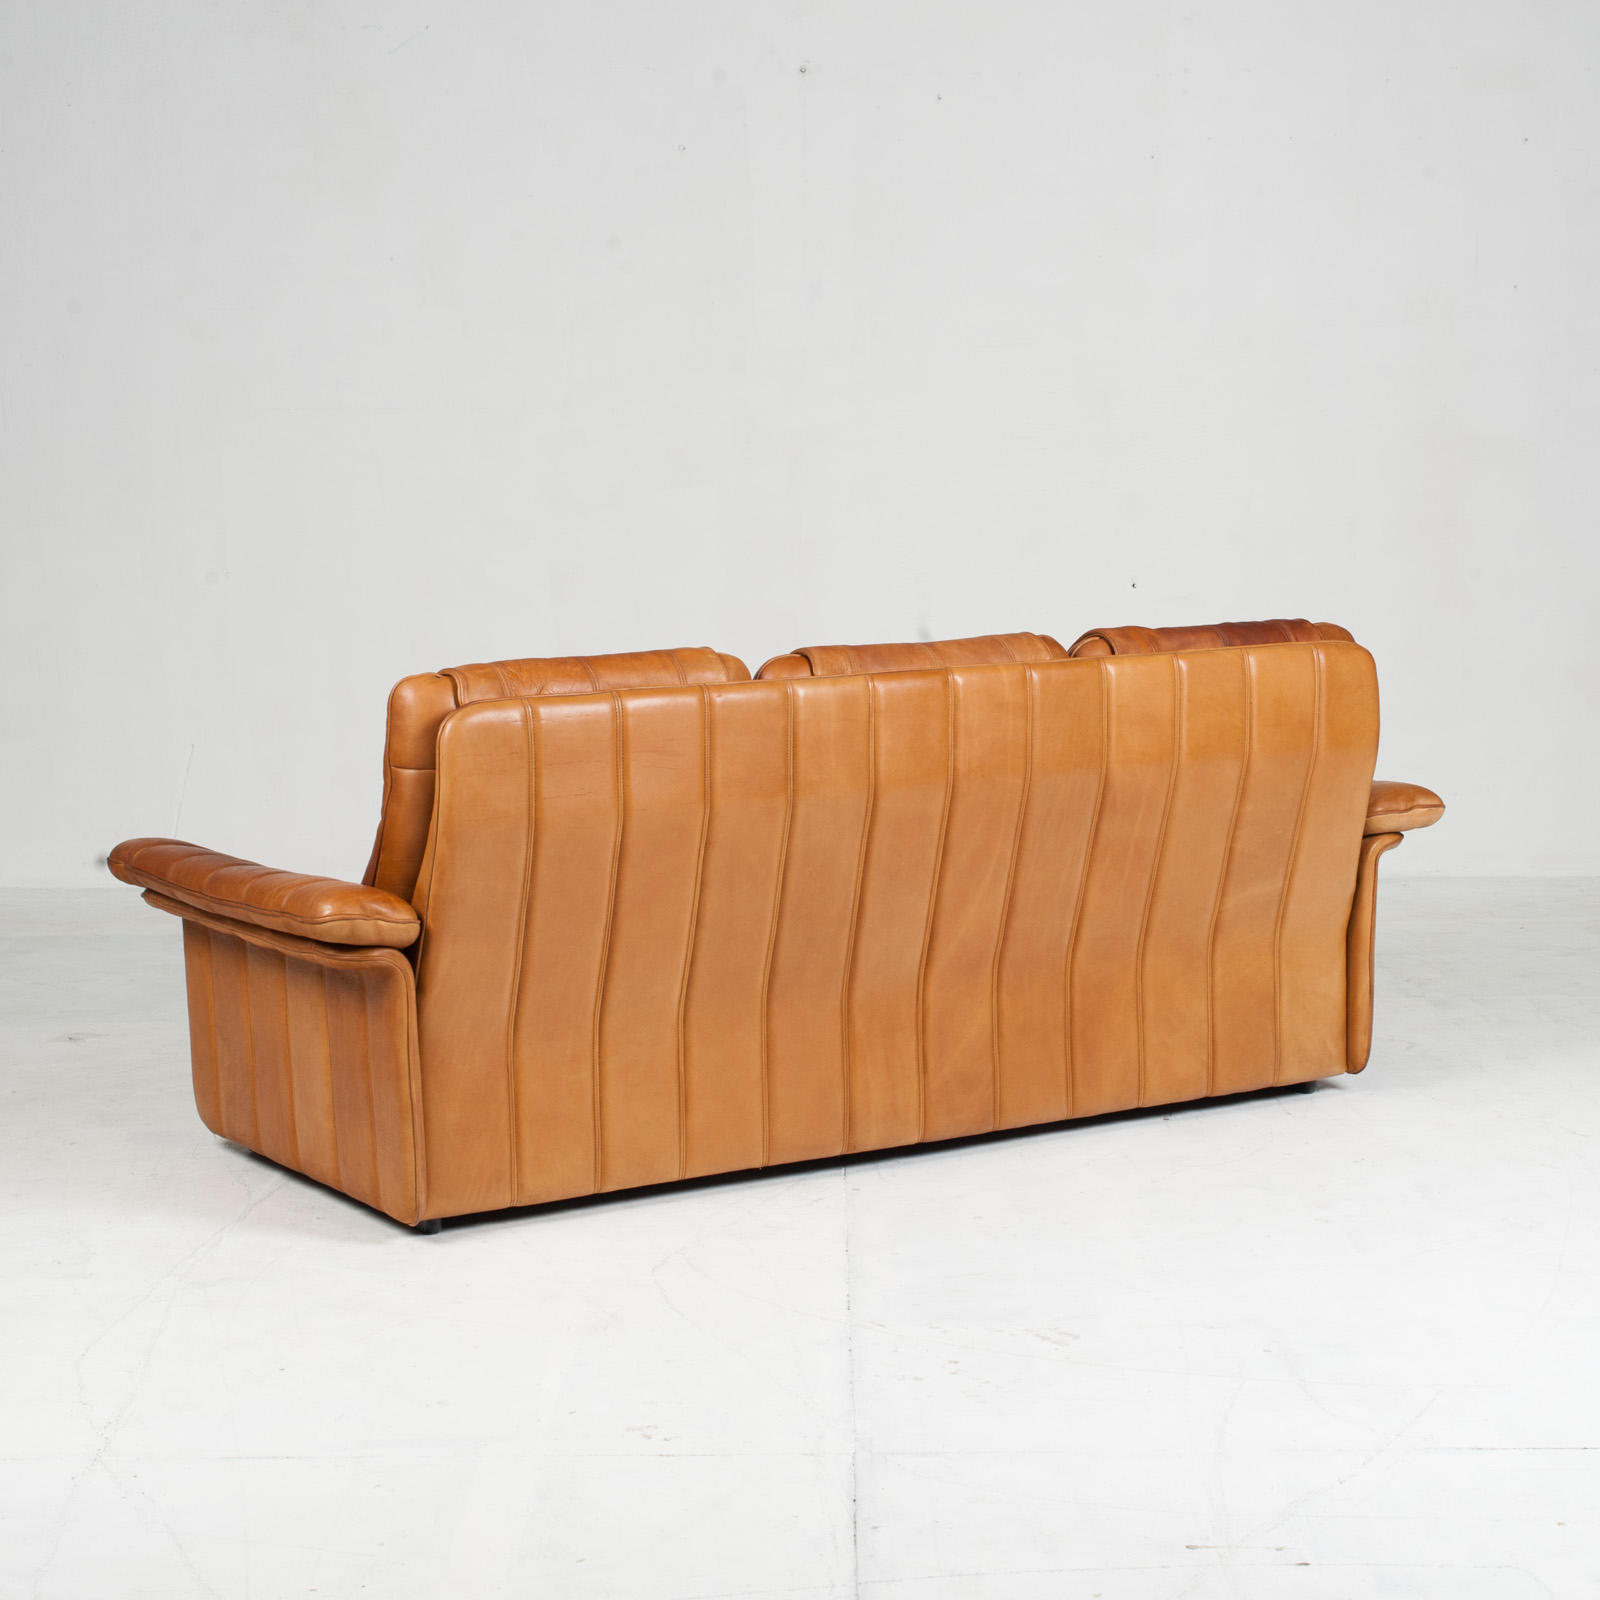 3 Seat Sofa By De Sede In Tan Leather 1970s Switzerland 11